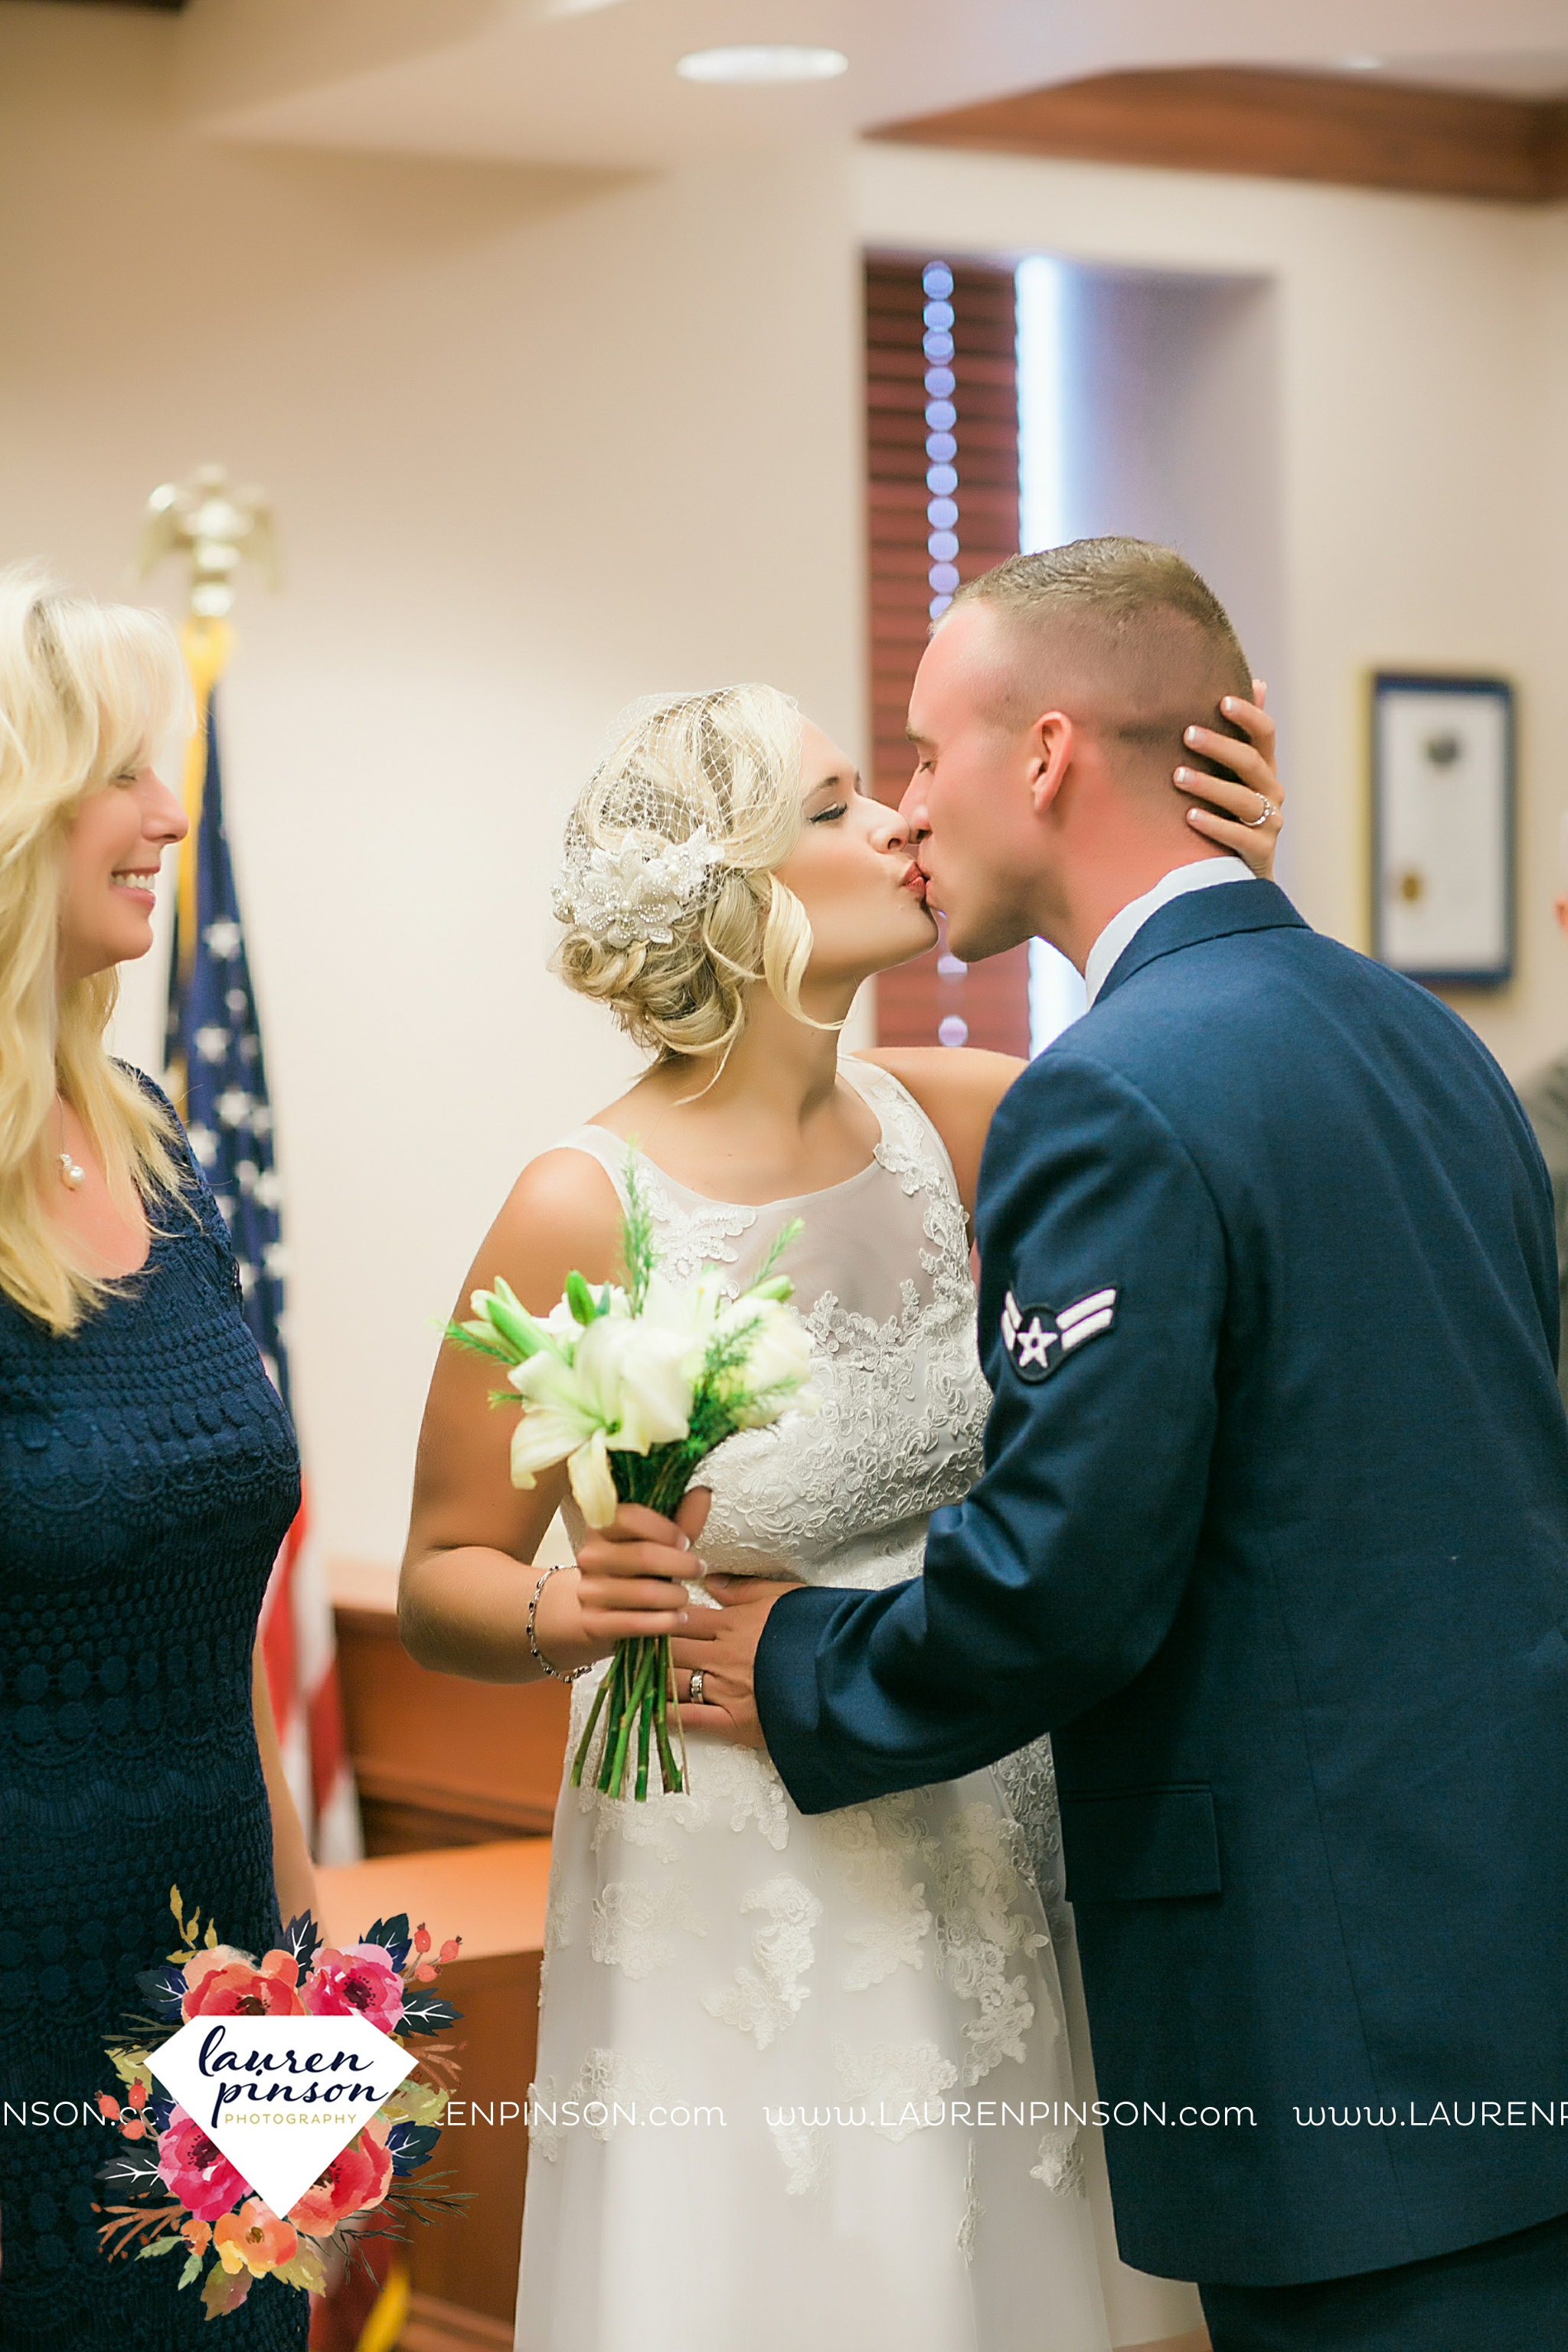 sheppard-afb-wichita-falls-texas-elopement-courthouse-wedding-photographer-justice-of-the-peace-judge-little-ceremony_3276.jpg